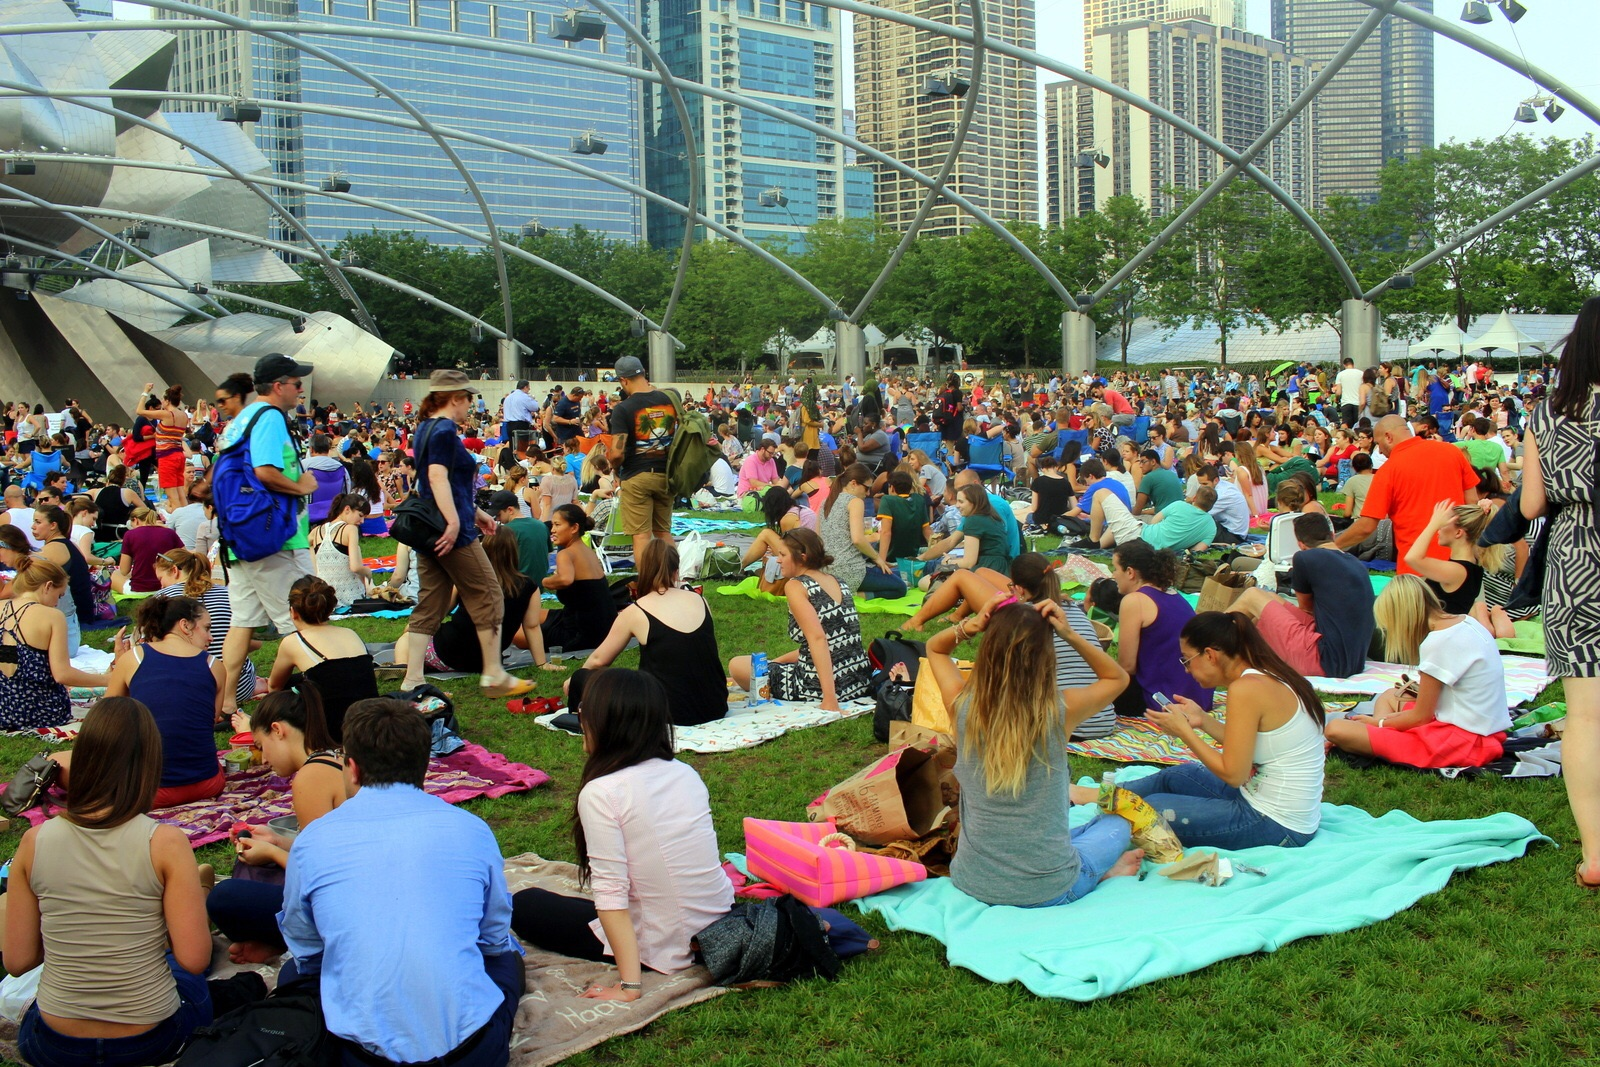 The crowds at the Pritzker Pavilion.